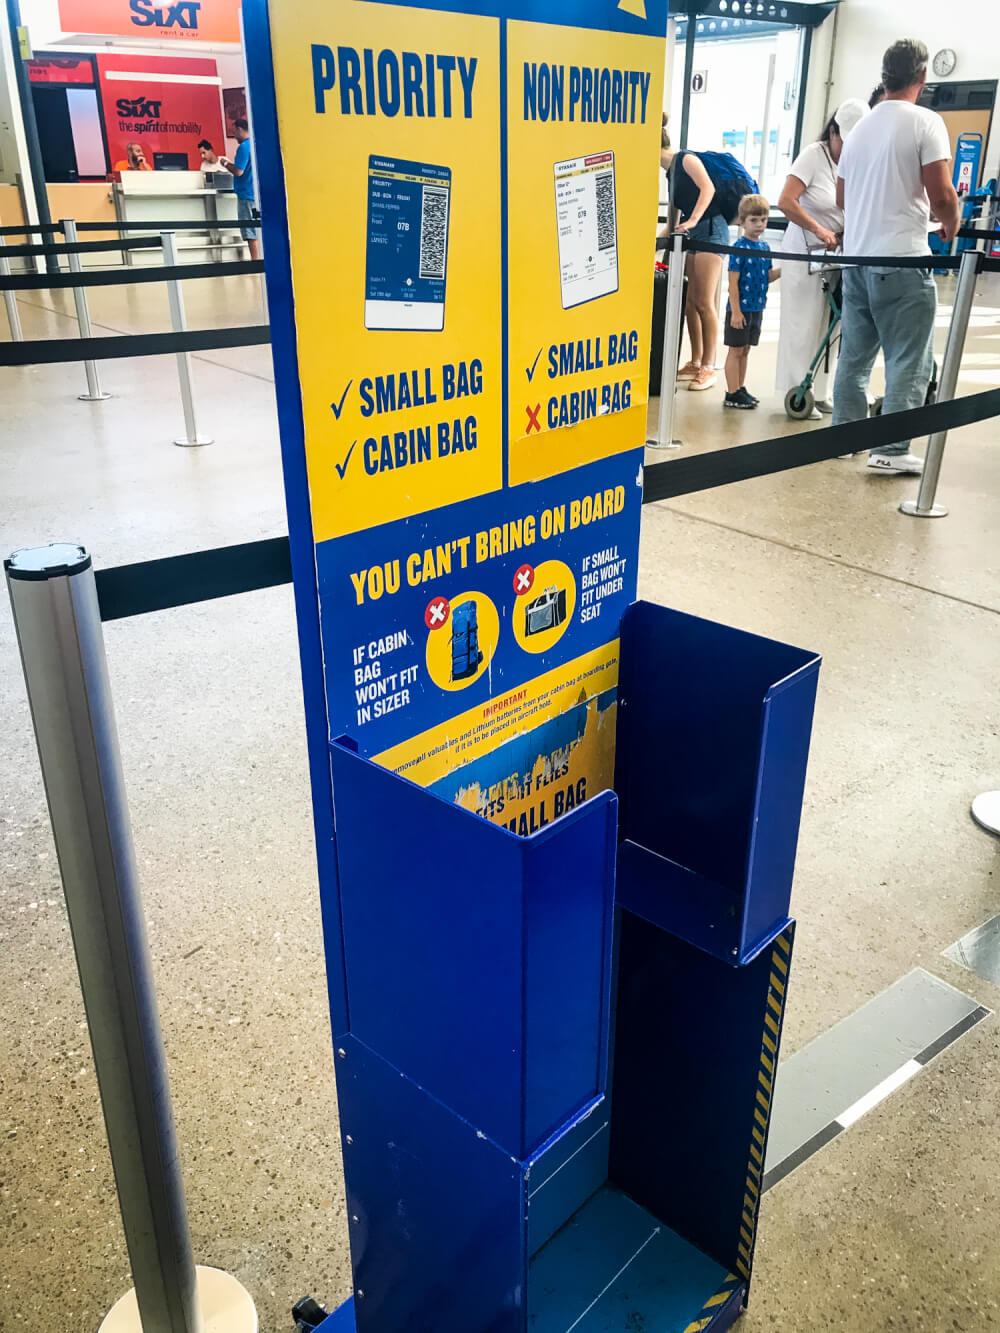 RyanAir size restriction checker at the airport